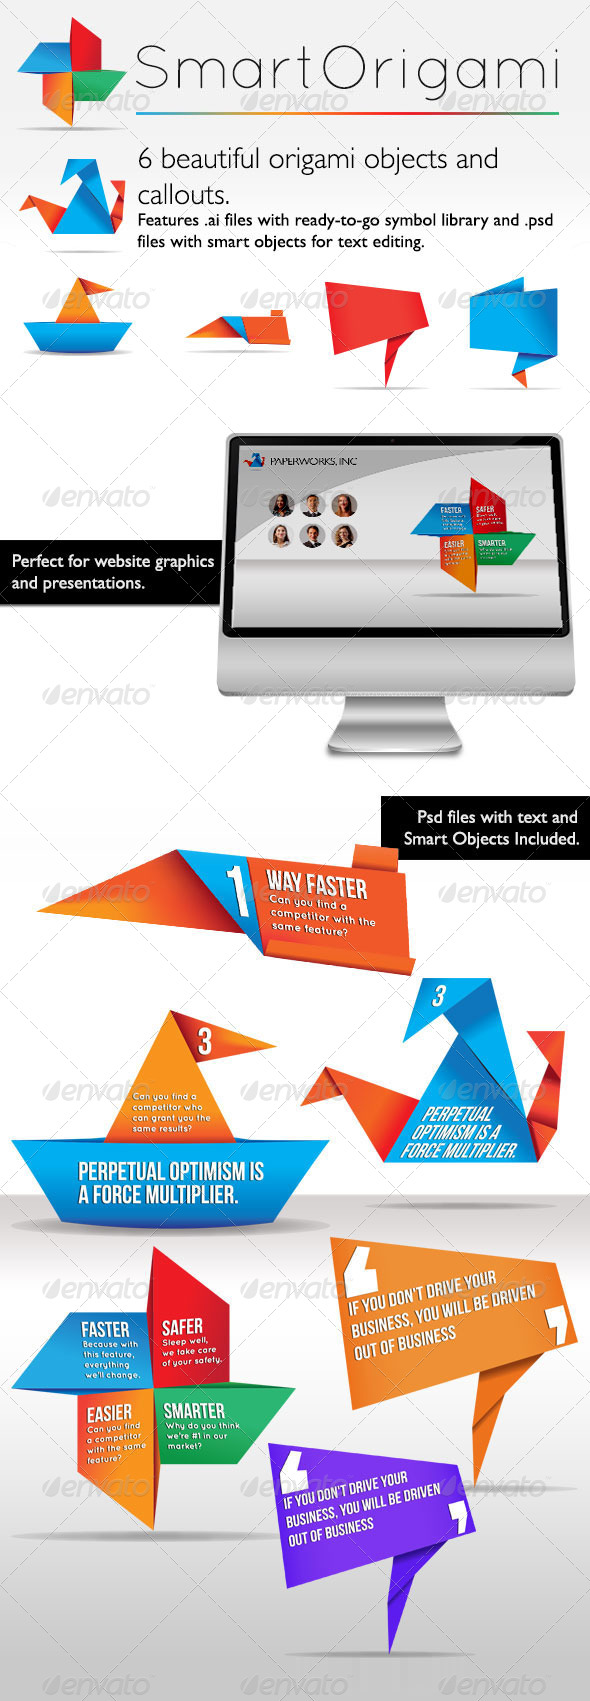 GraphicRiver Smart Origami Symbols 5122955